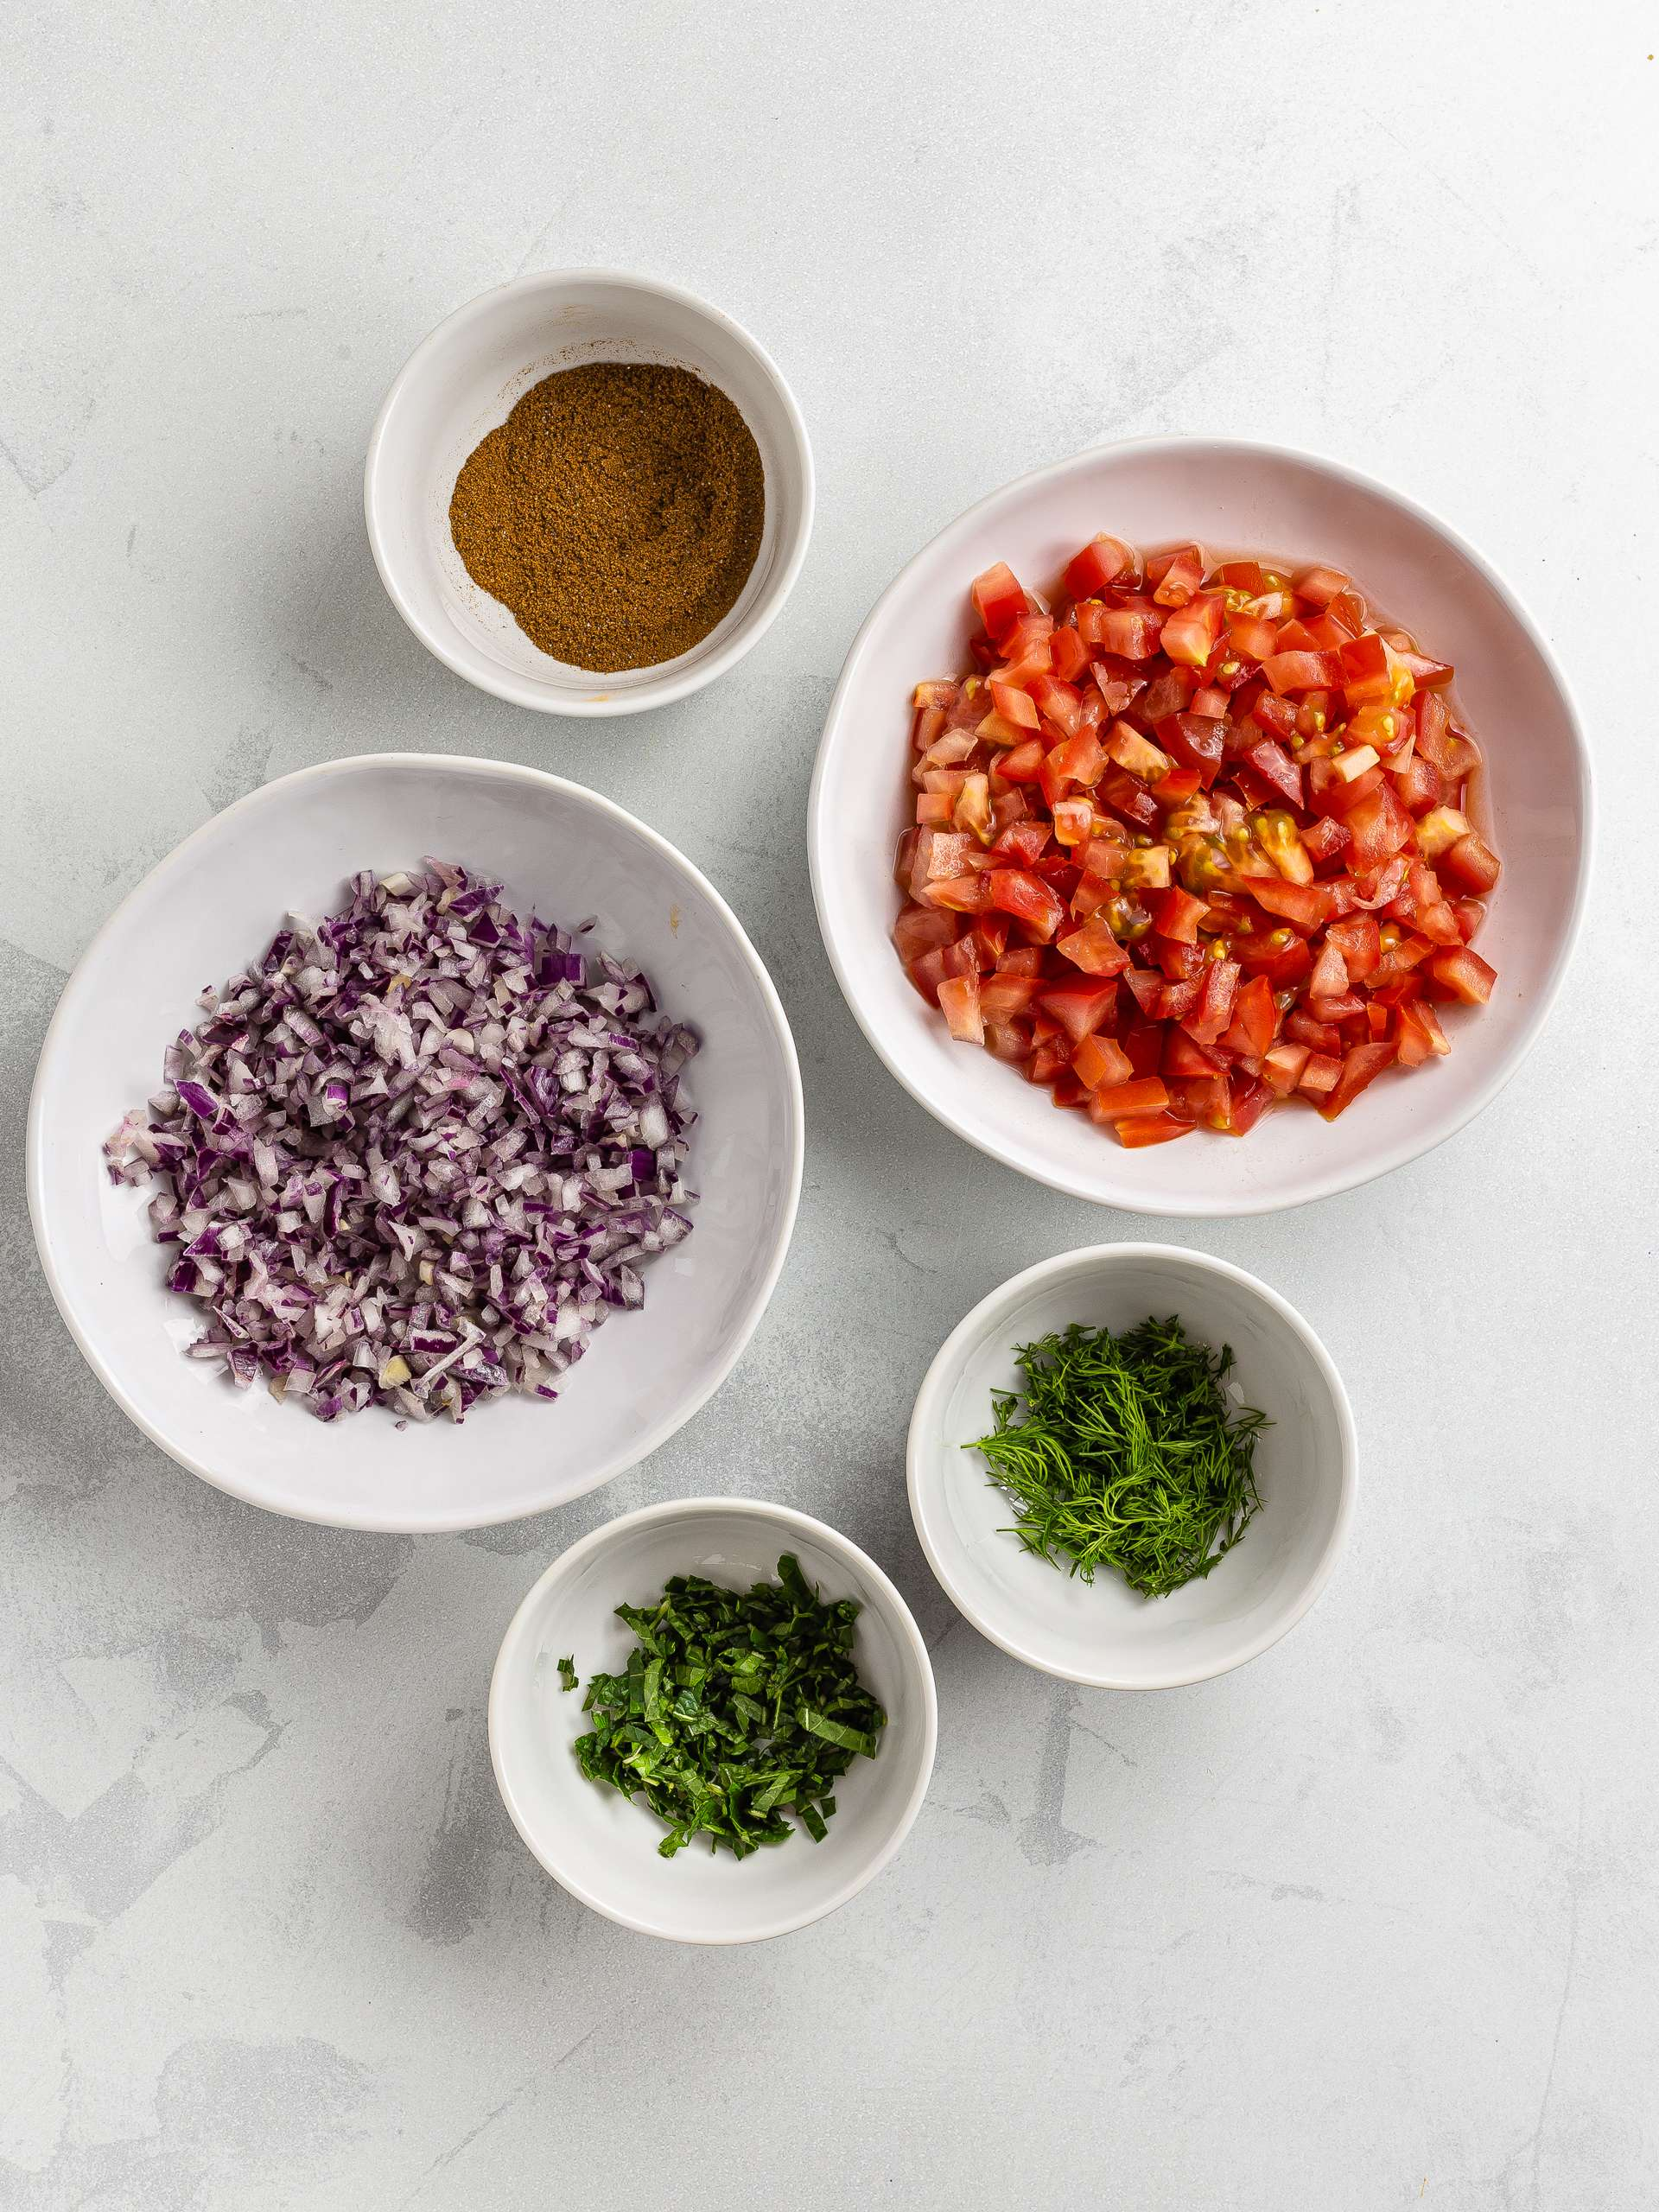 chopped vegetables for cabbage roll filling